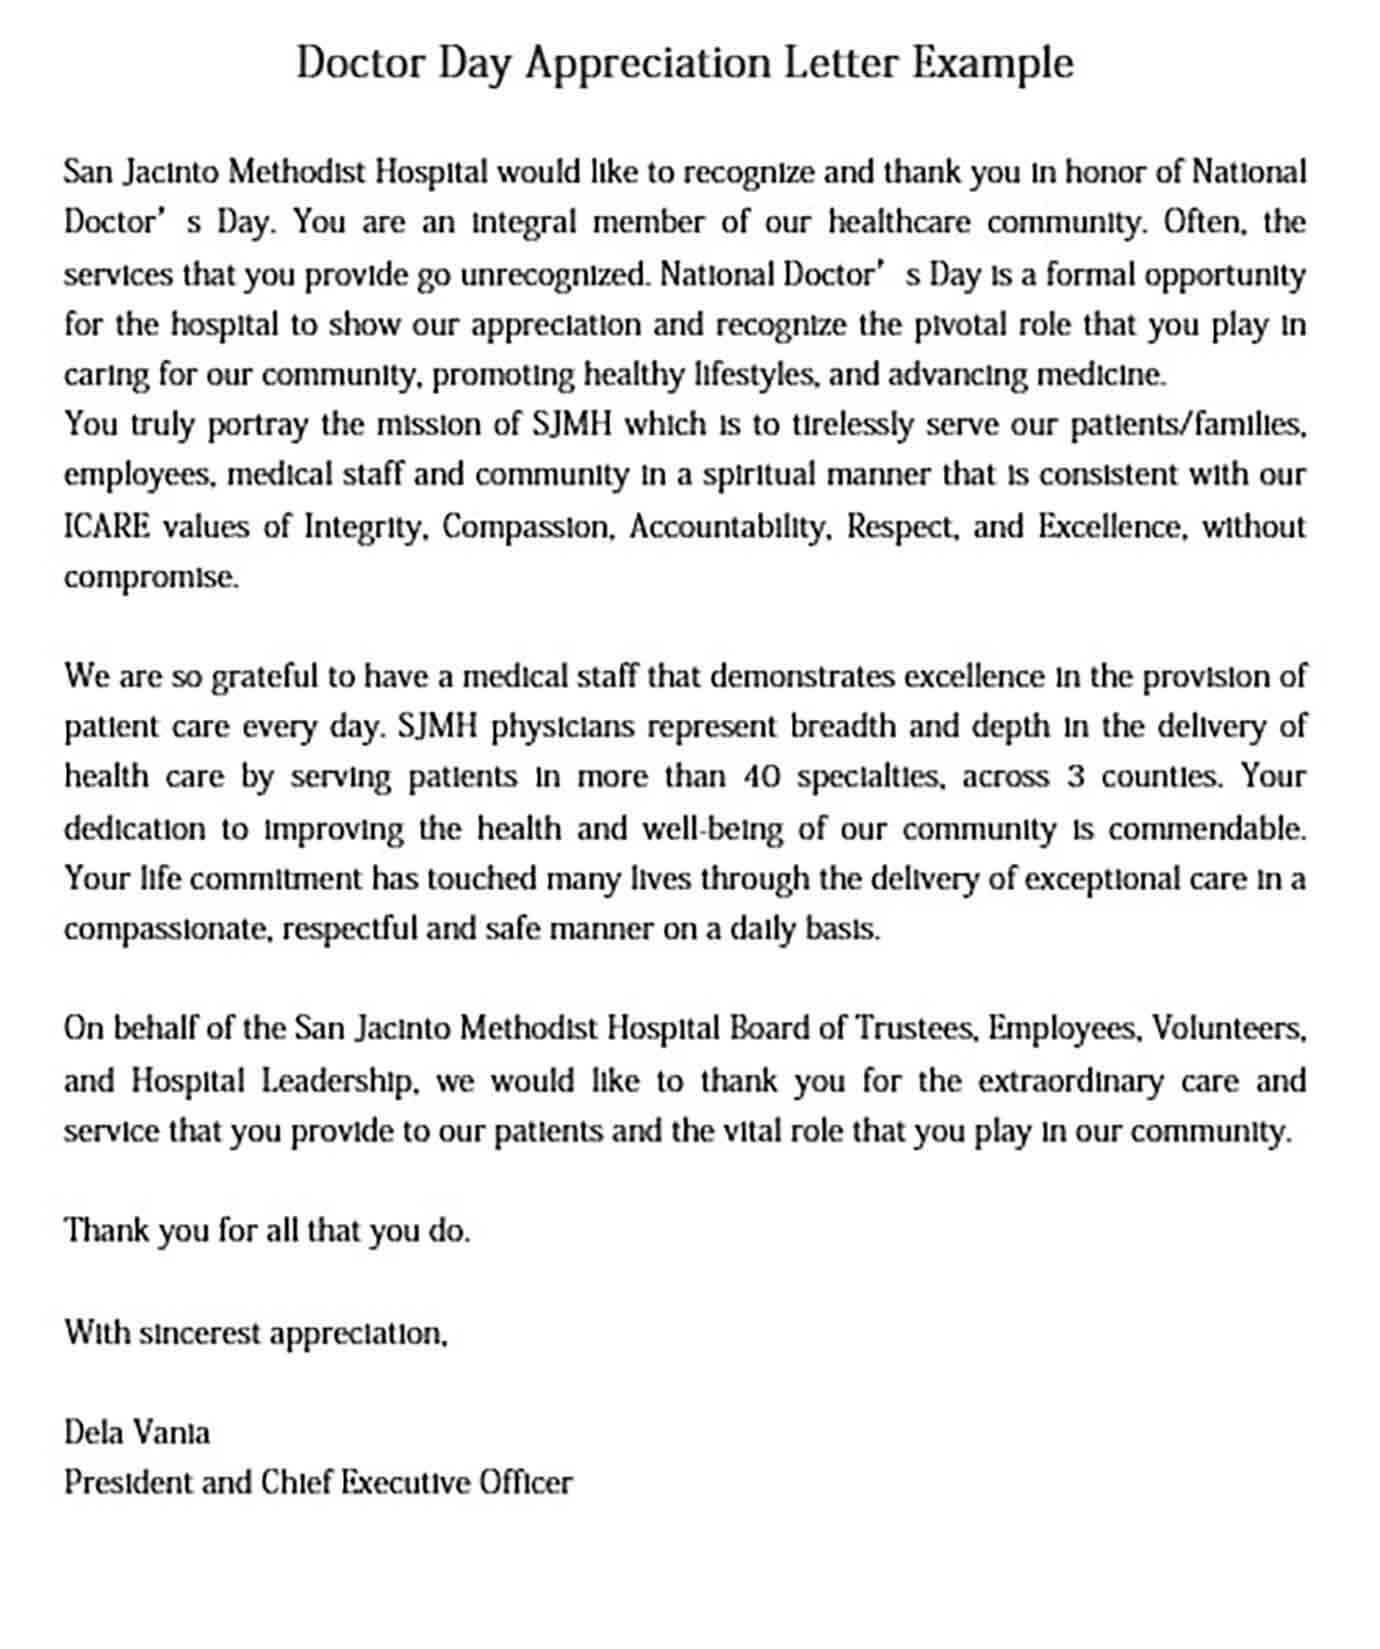 Doctor Day Appreciation Letter Example